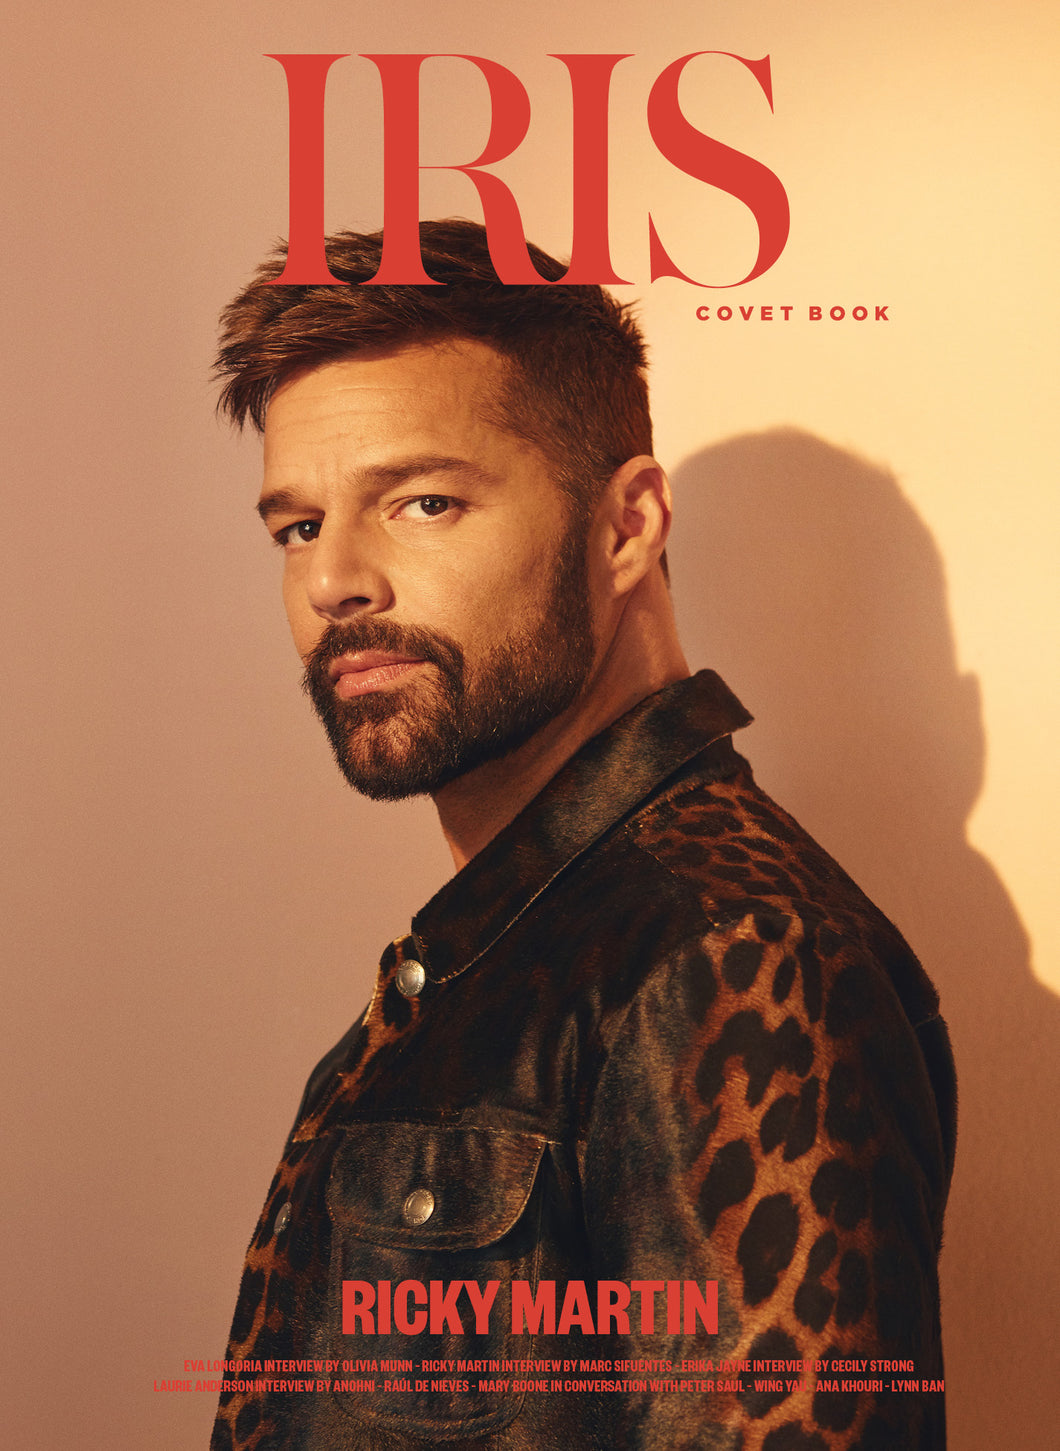 ISSUE 11 PRE-ORDER - RICKY MARTIN